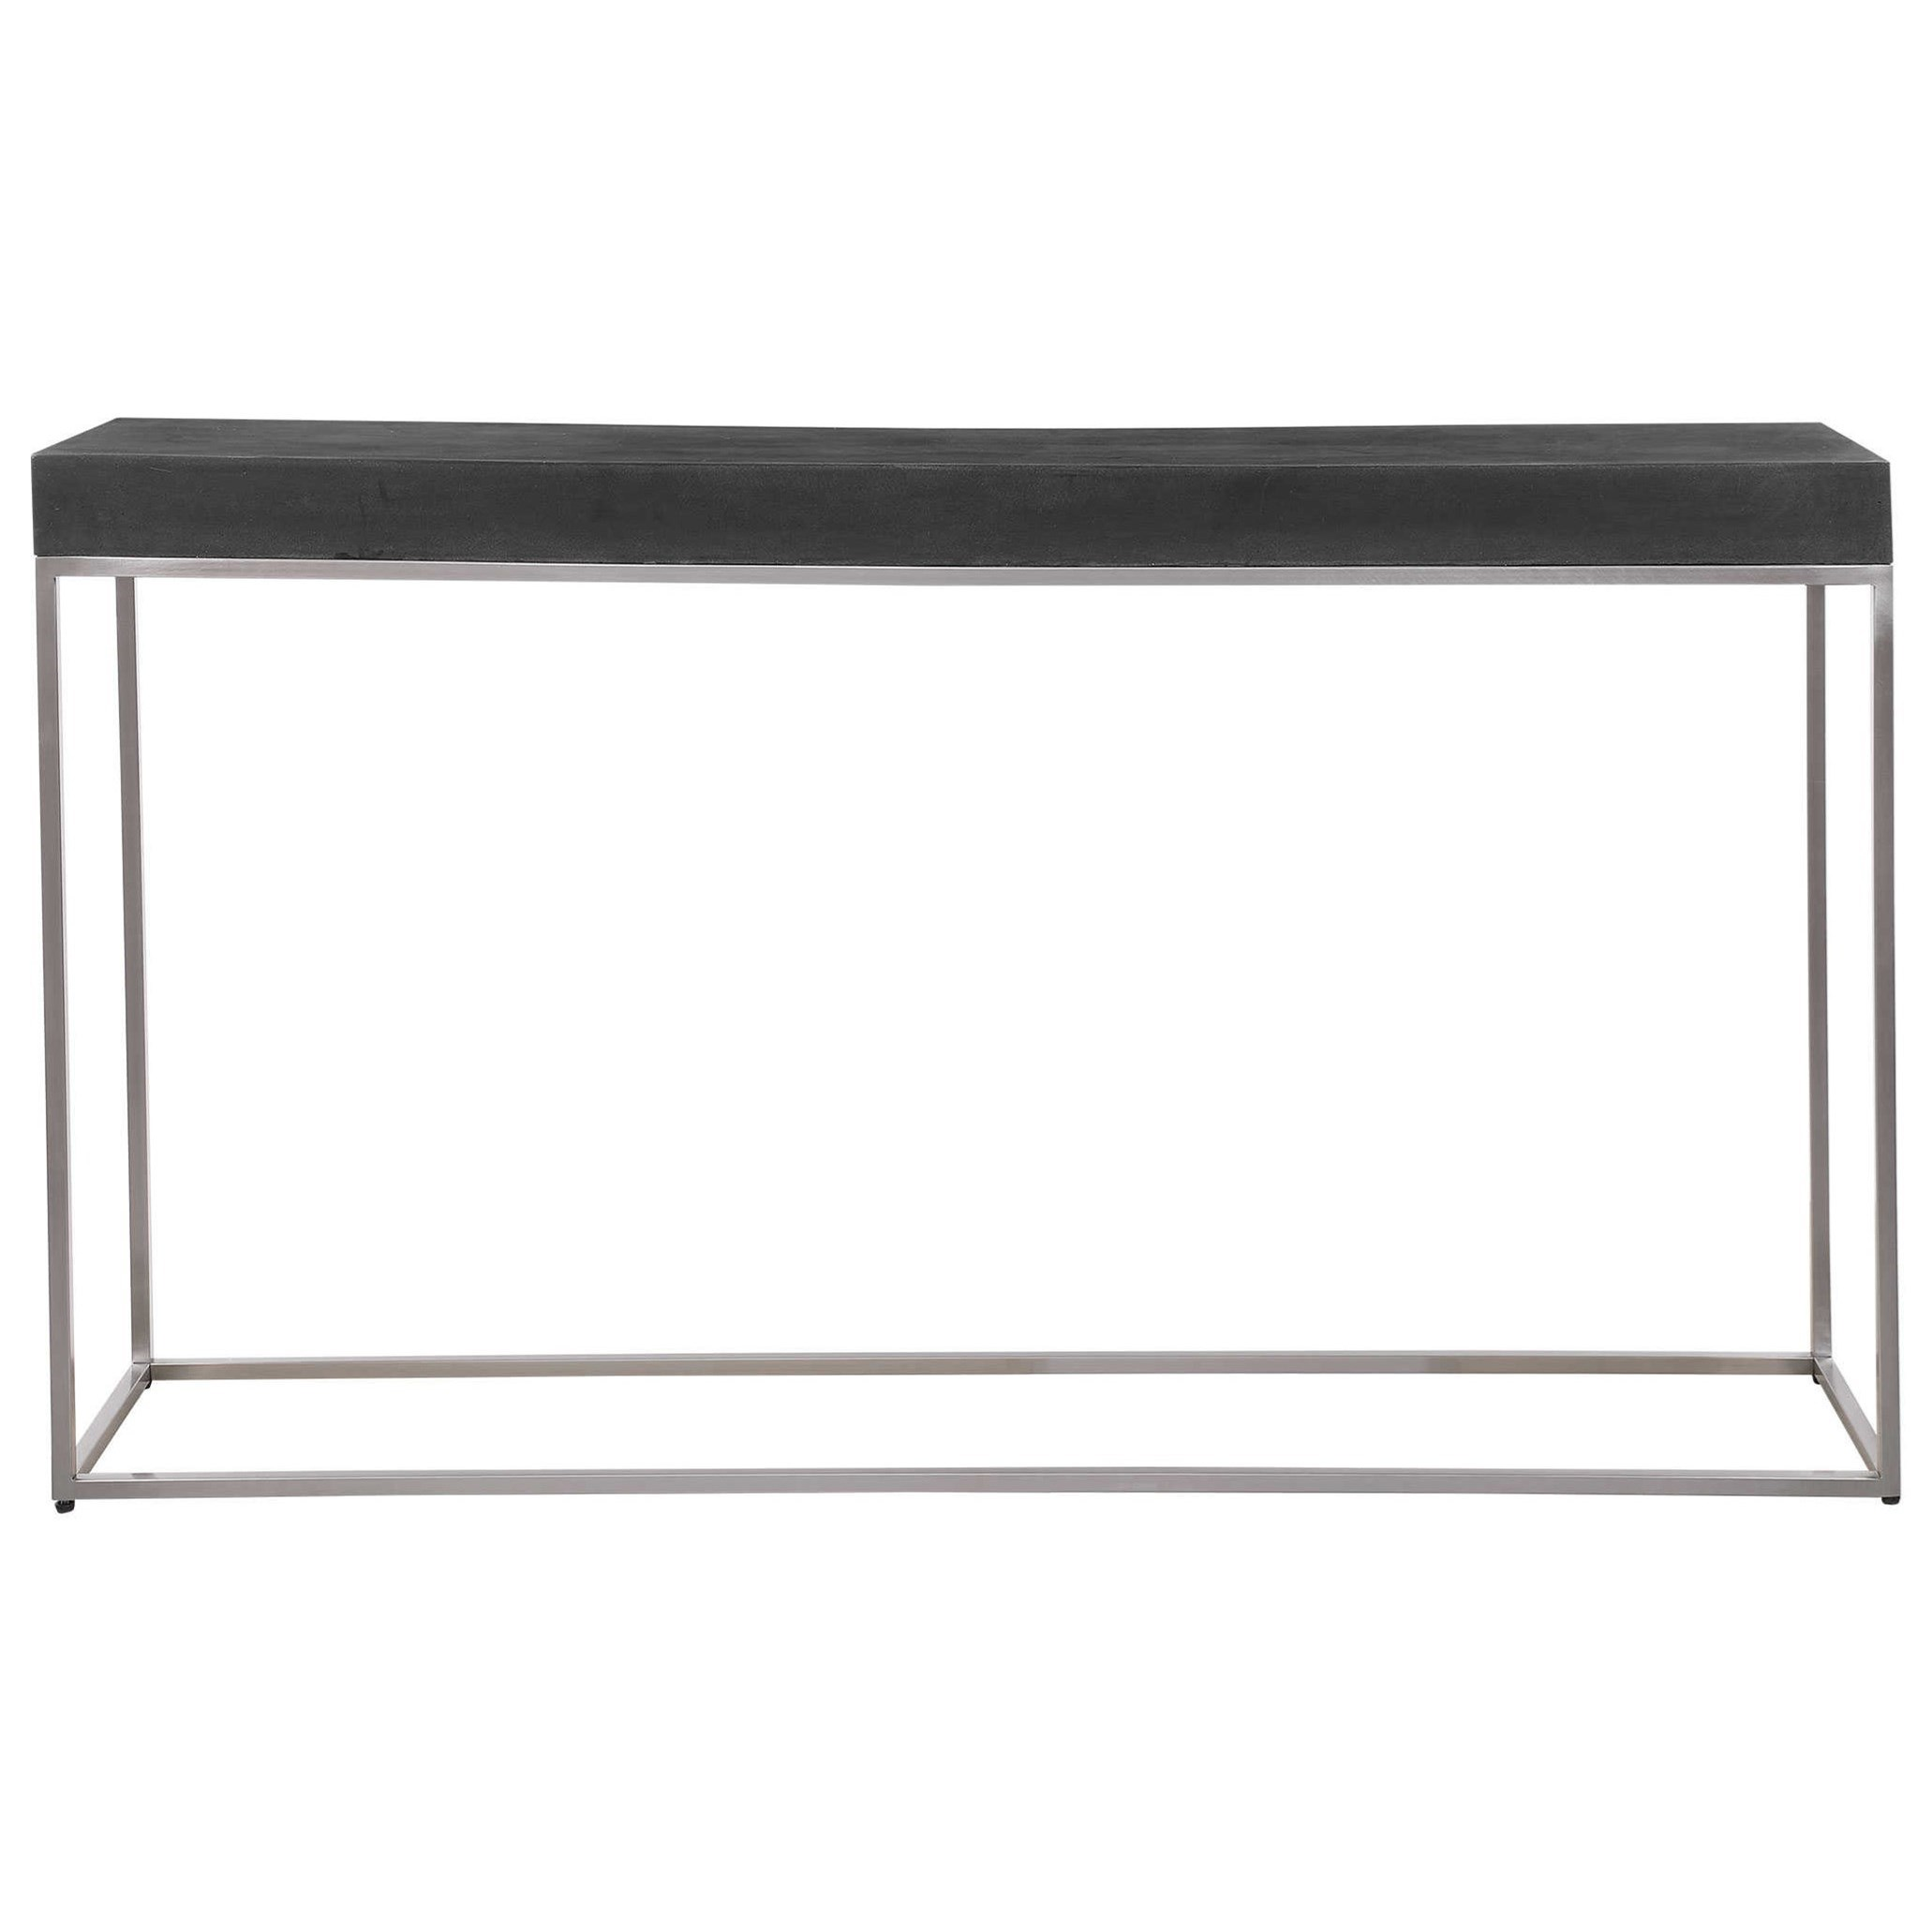 Accent Furniture - Occasional Tables Black Concrete Console Table by Uttermost at Suburban Furniture